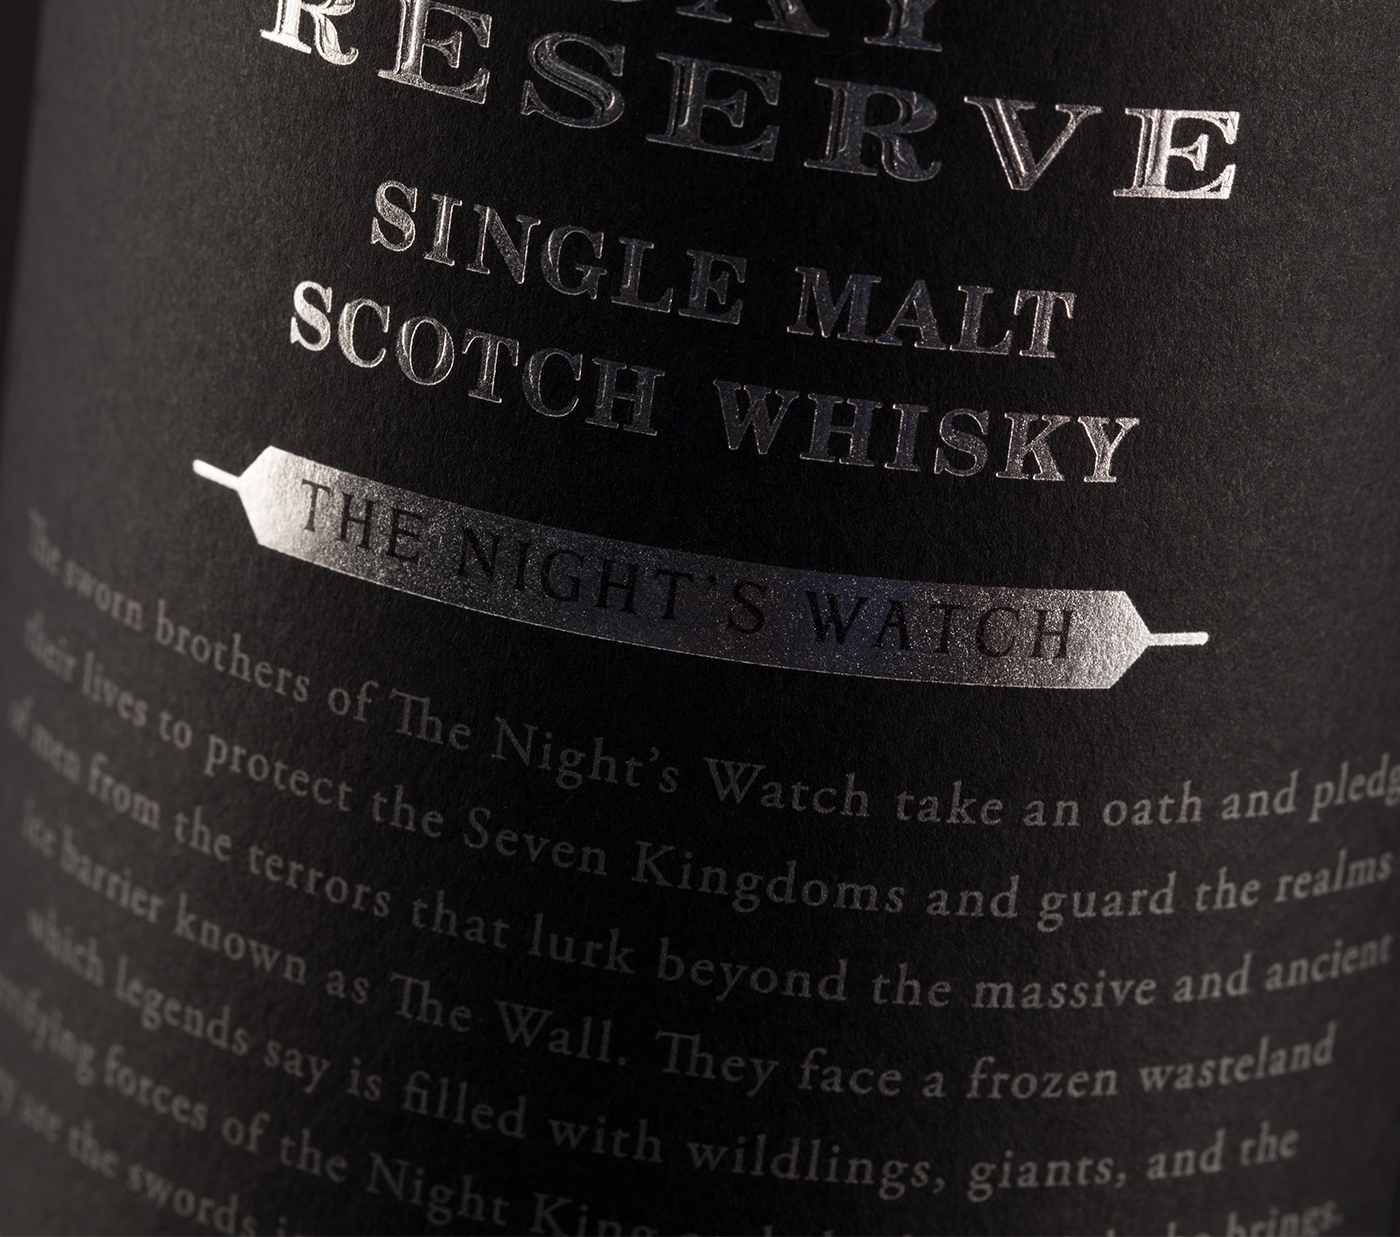 The NIght's Watch Whisky Label